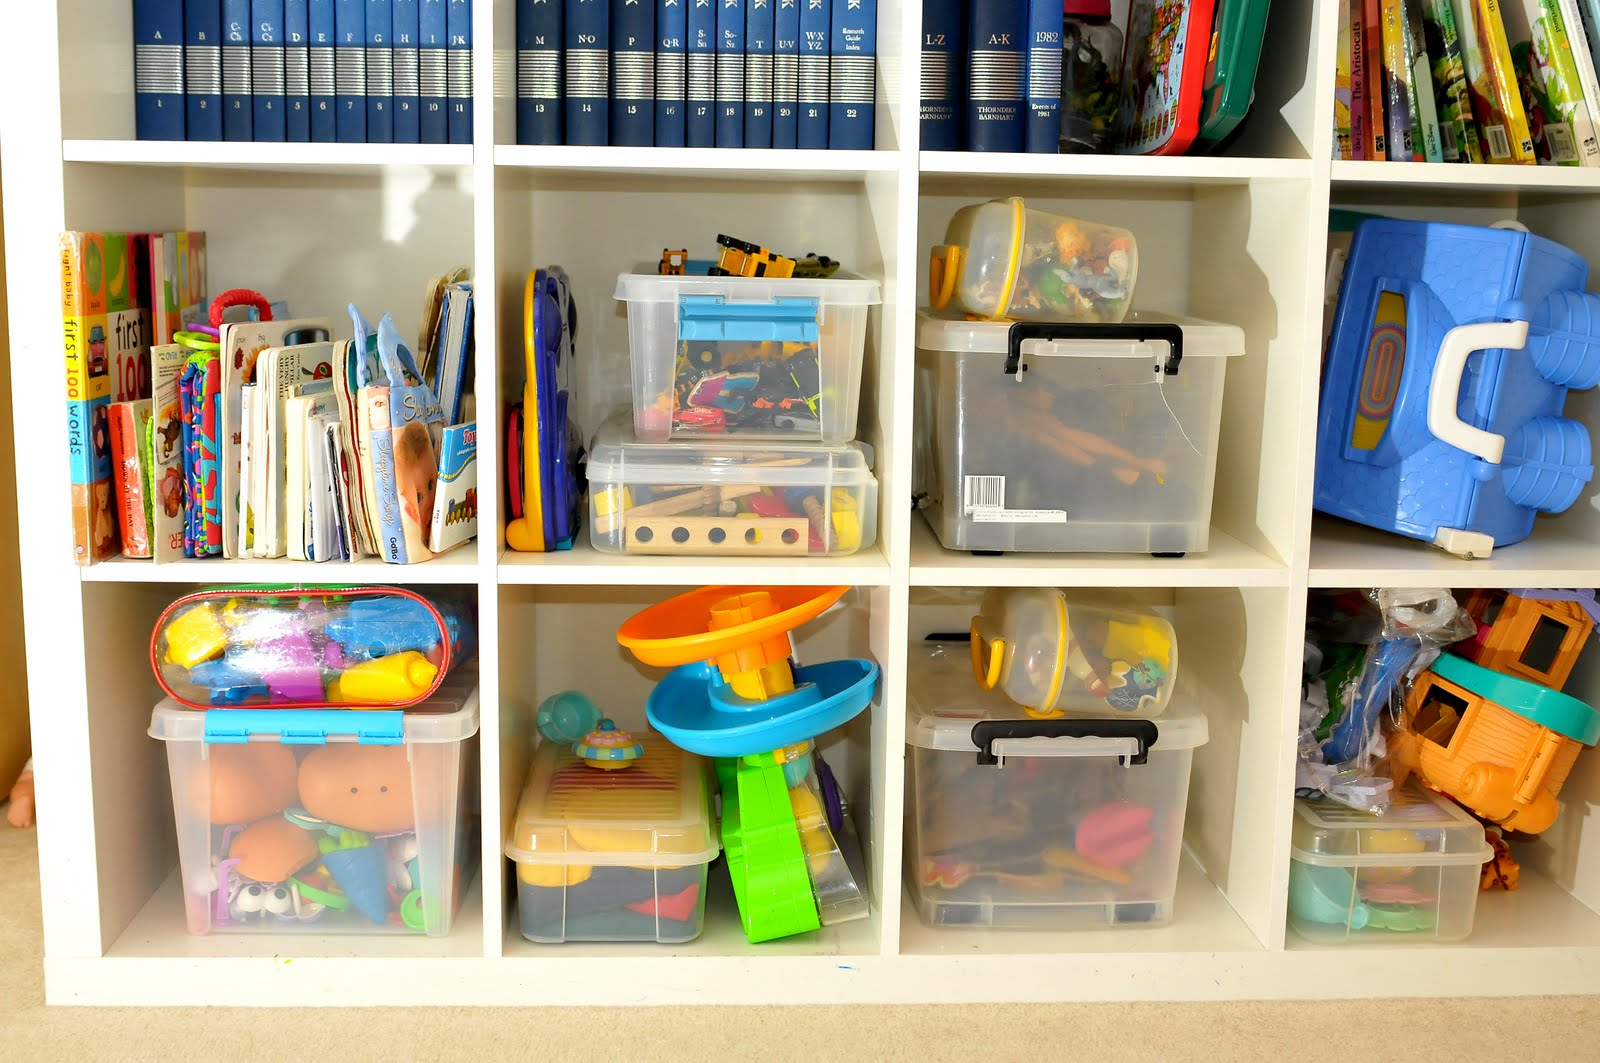 5 Ikea Encuentre su hijo's room will Playroom for less than $ 30 (your child room)